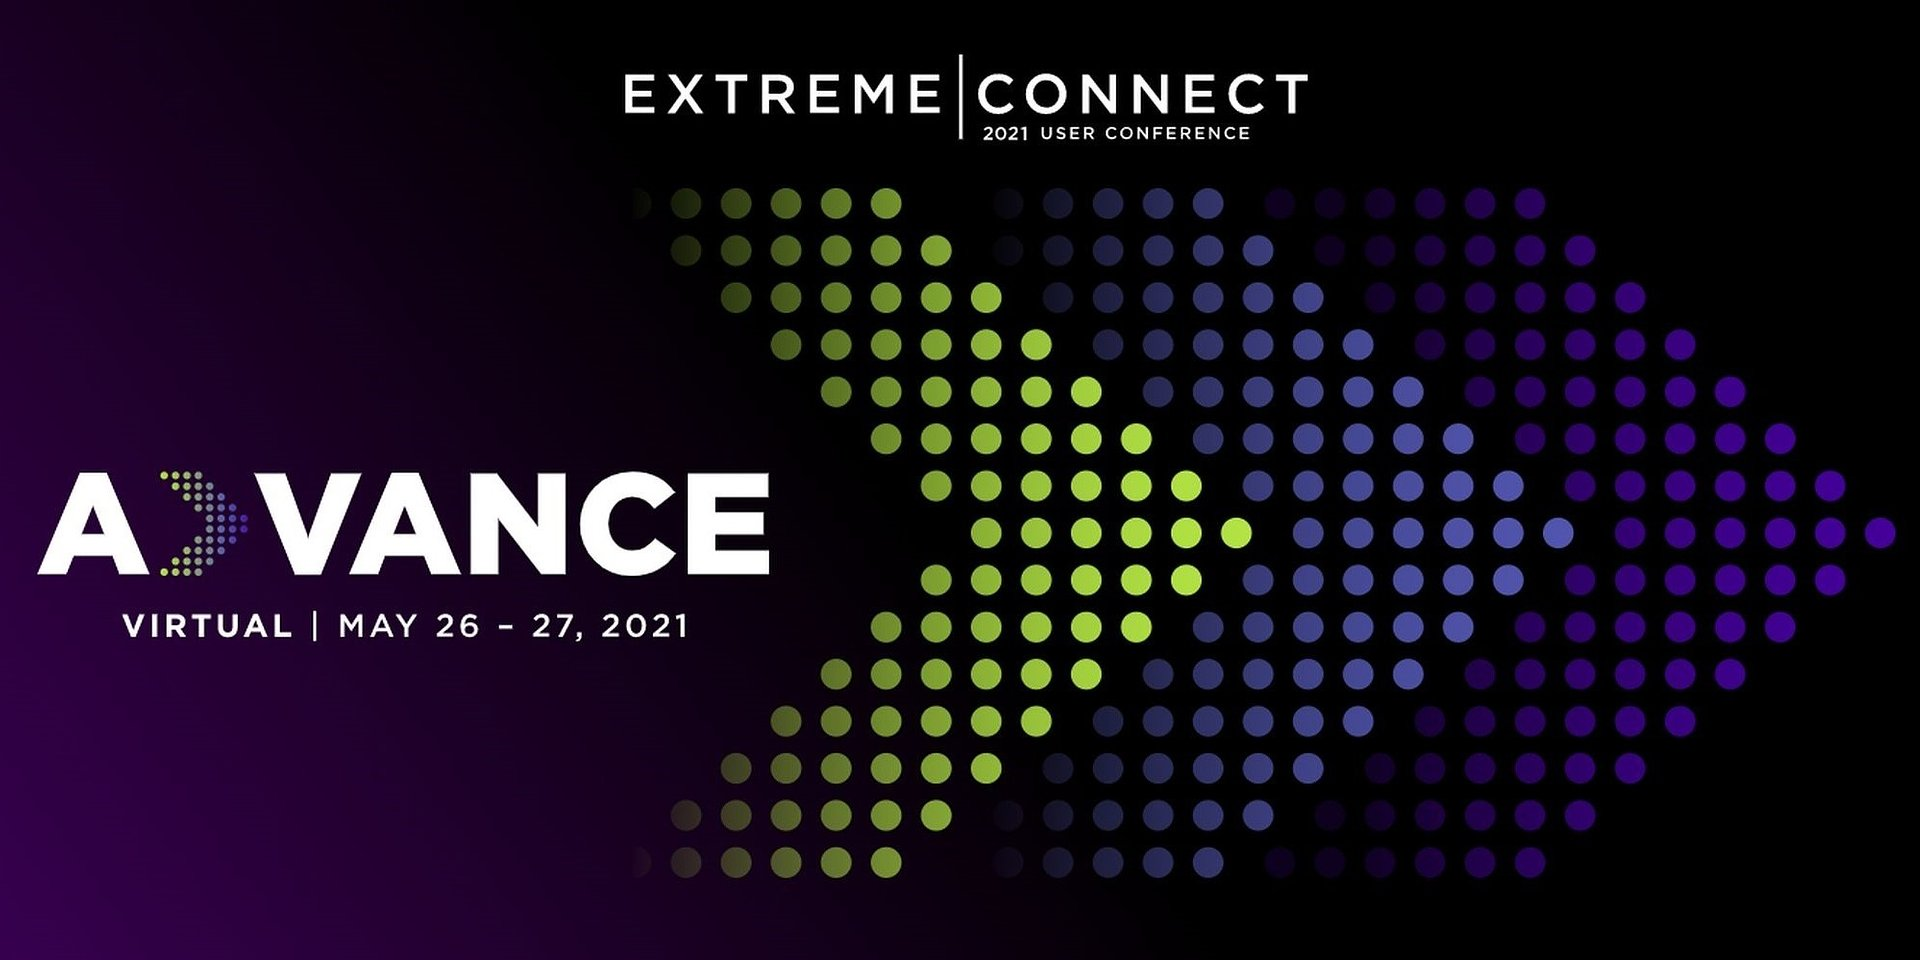 Extreme Connect is back!